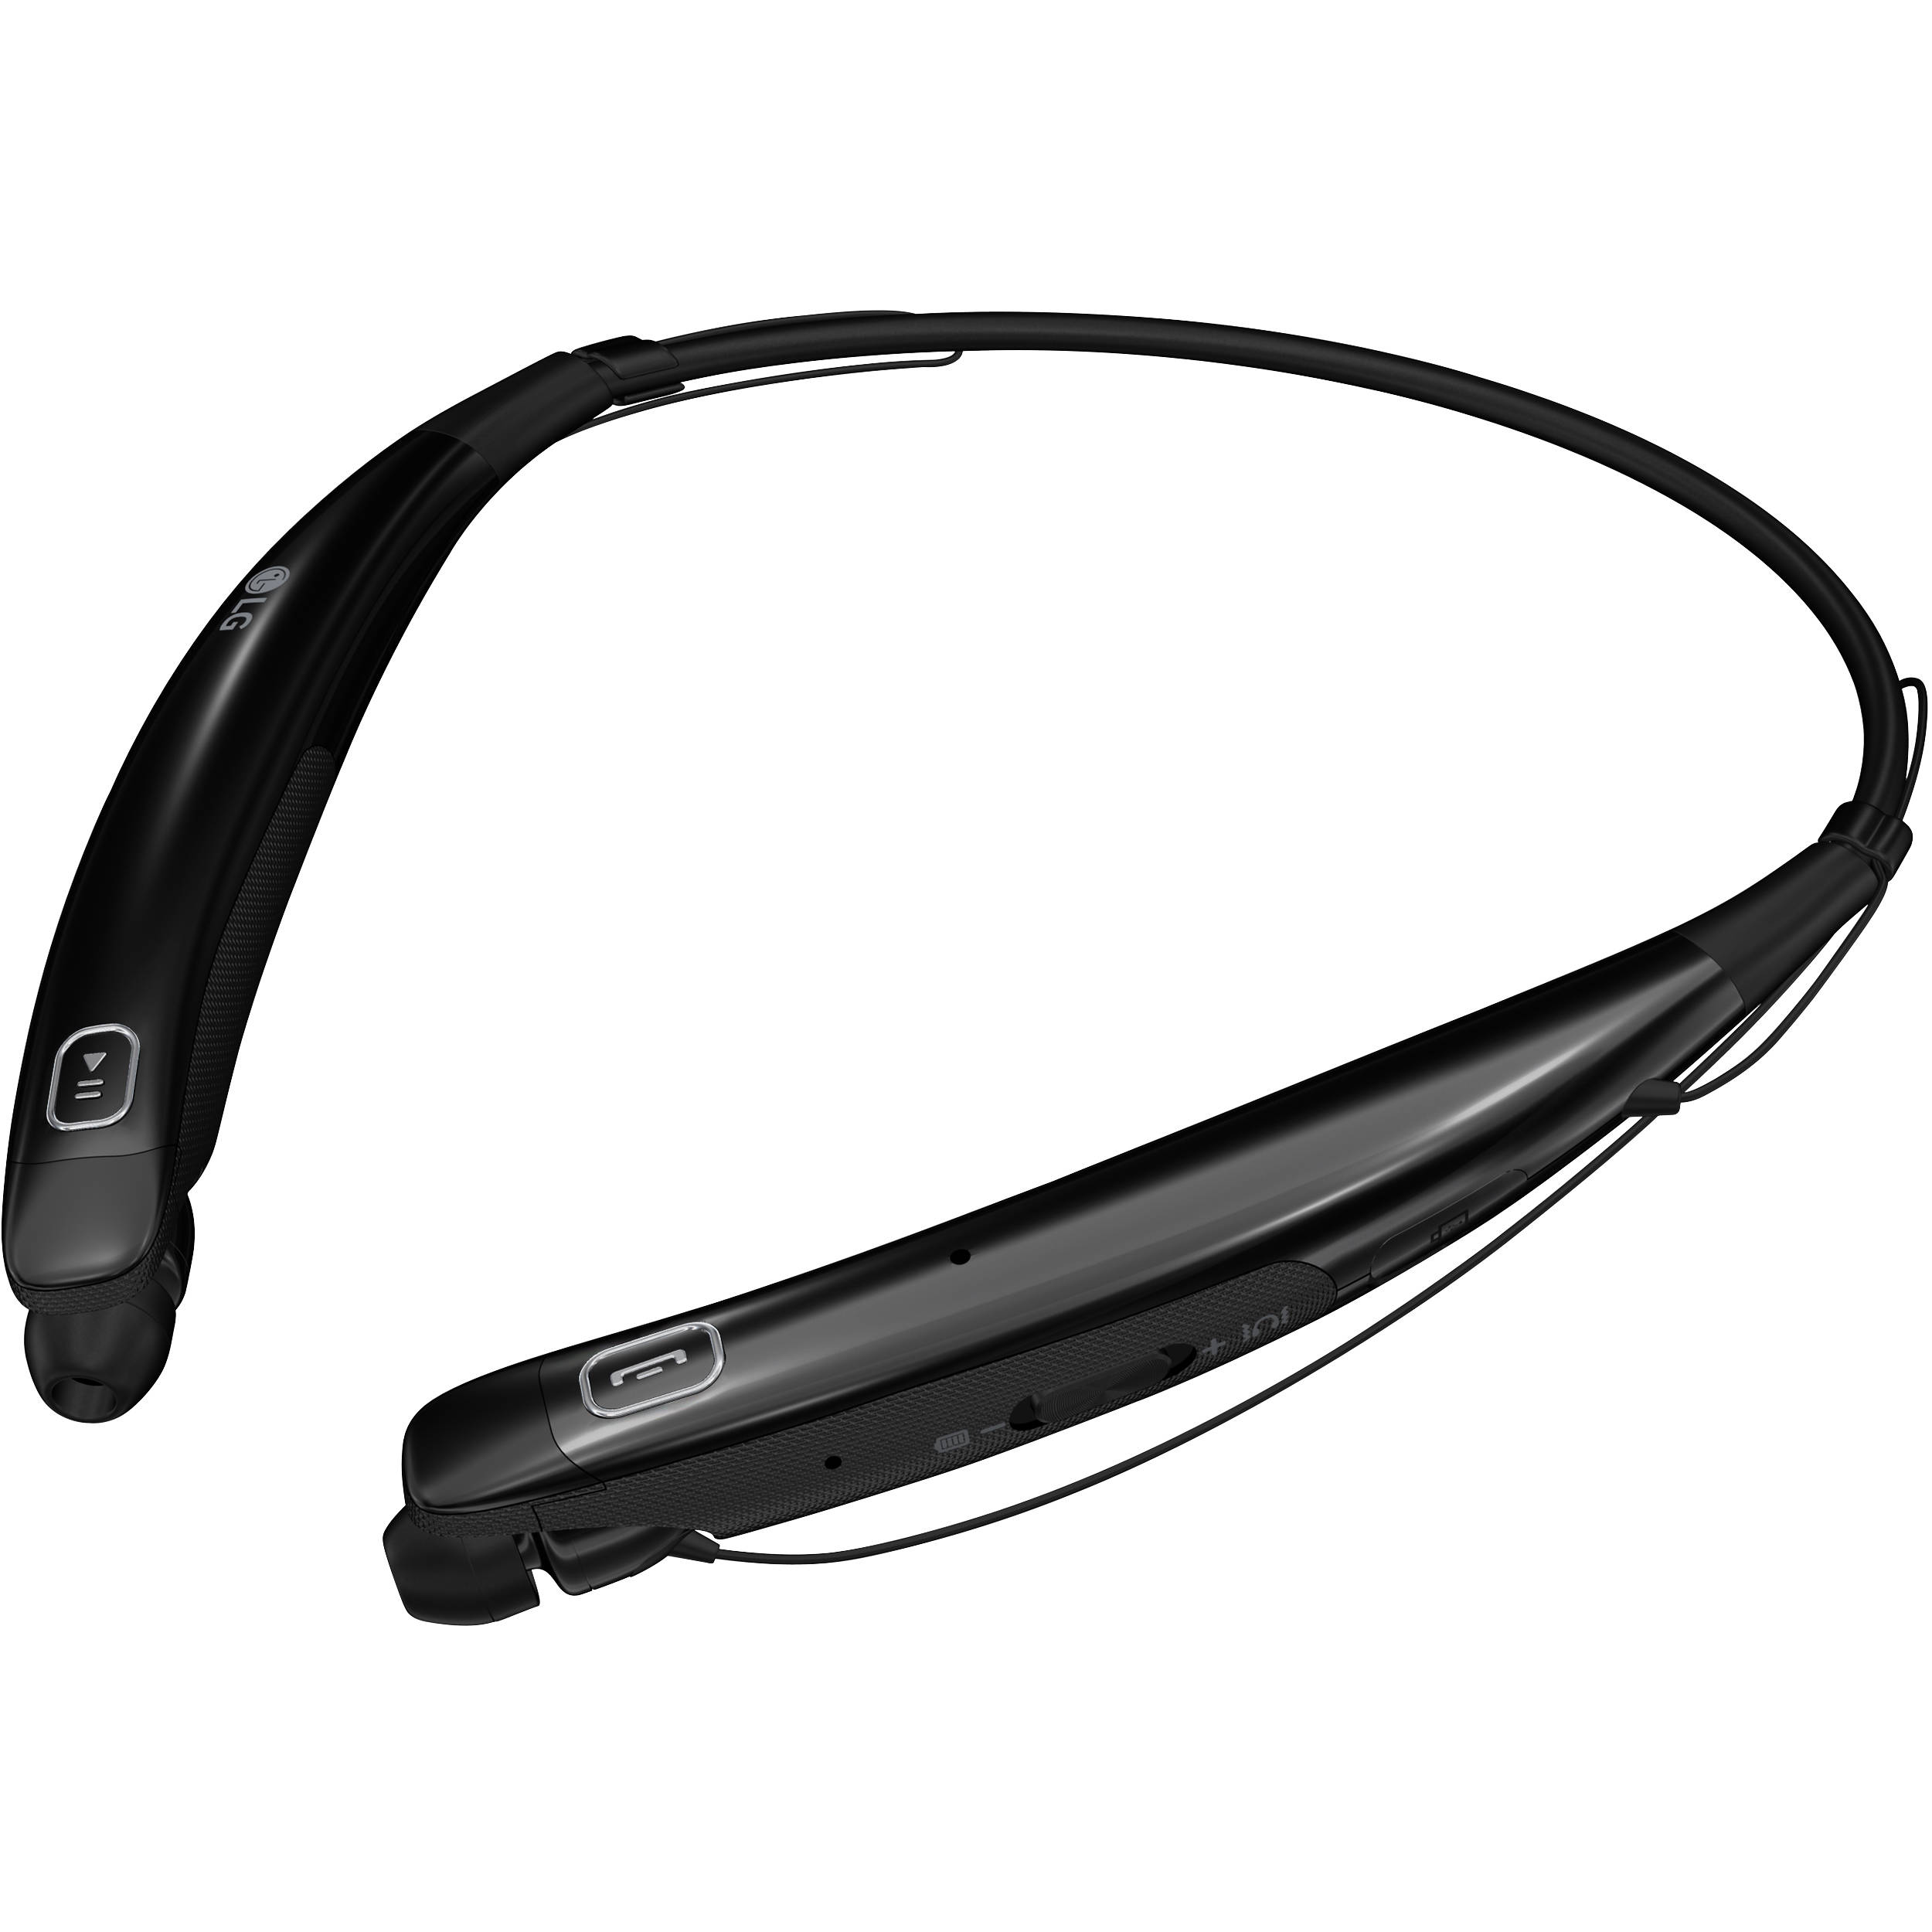 Lg headphones bluetooth accessories - Nady QH-360 Headphones Overview